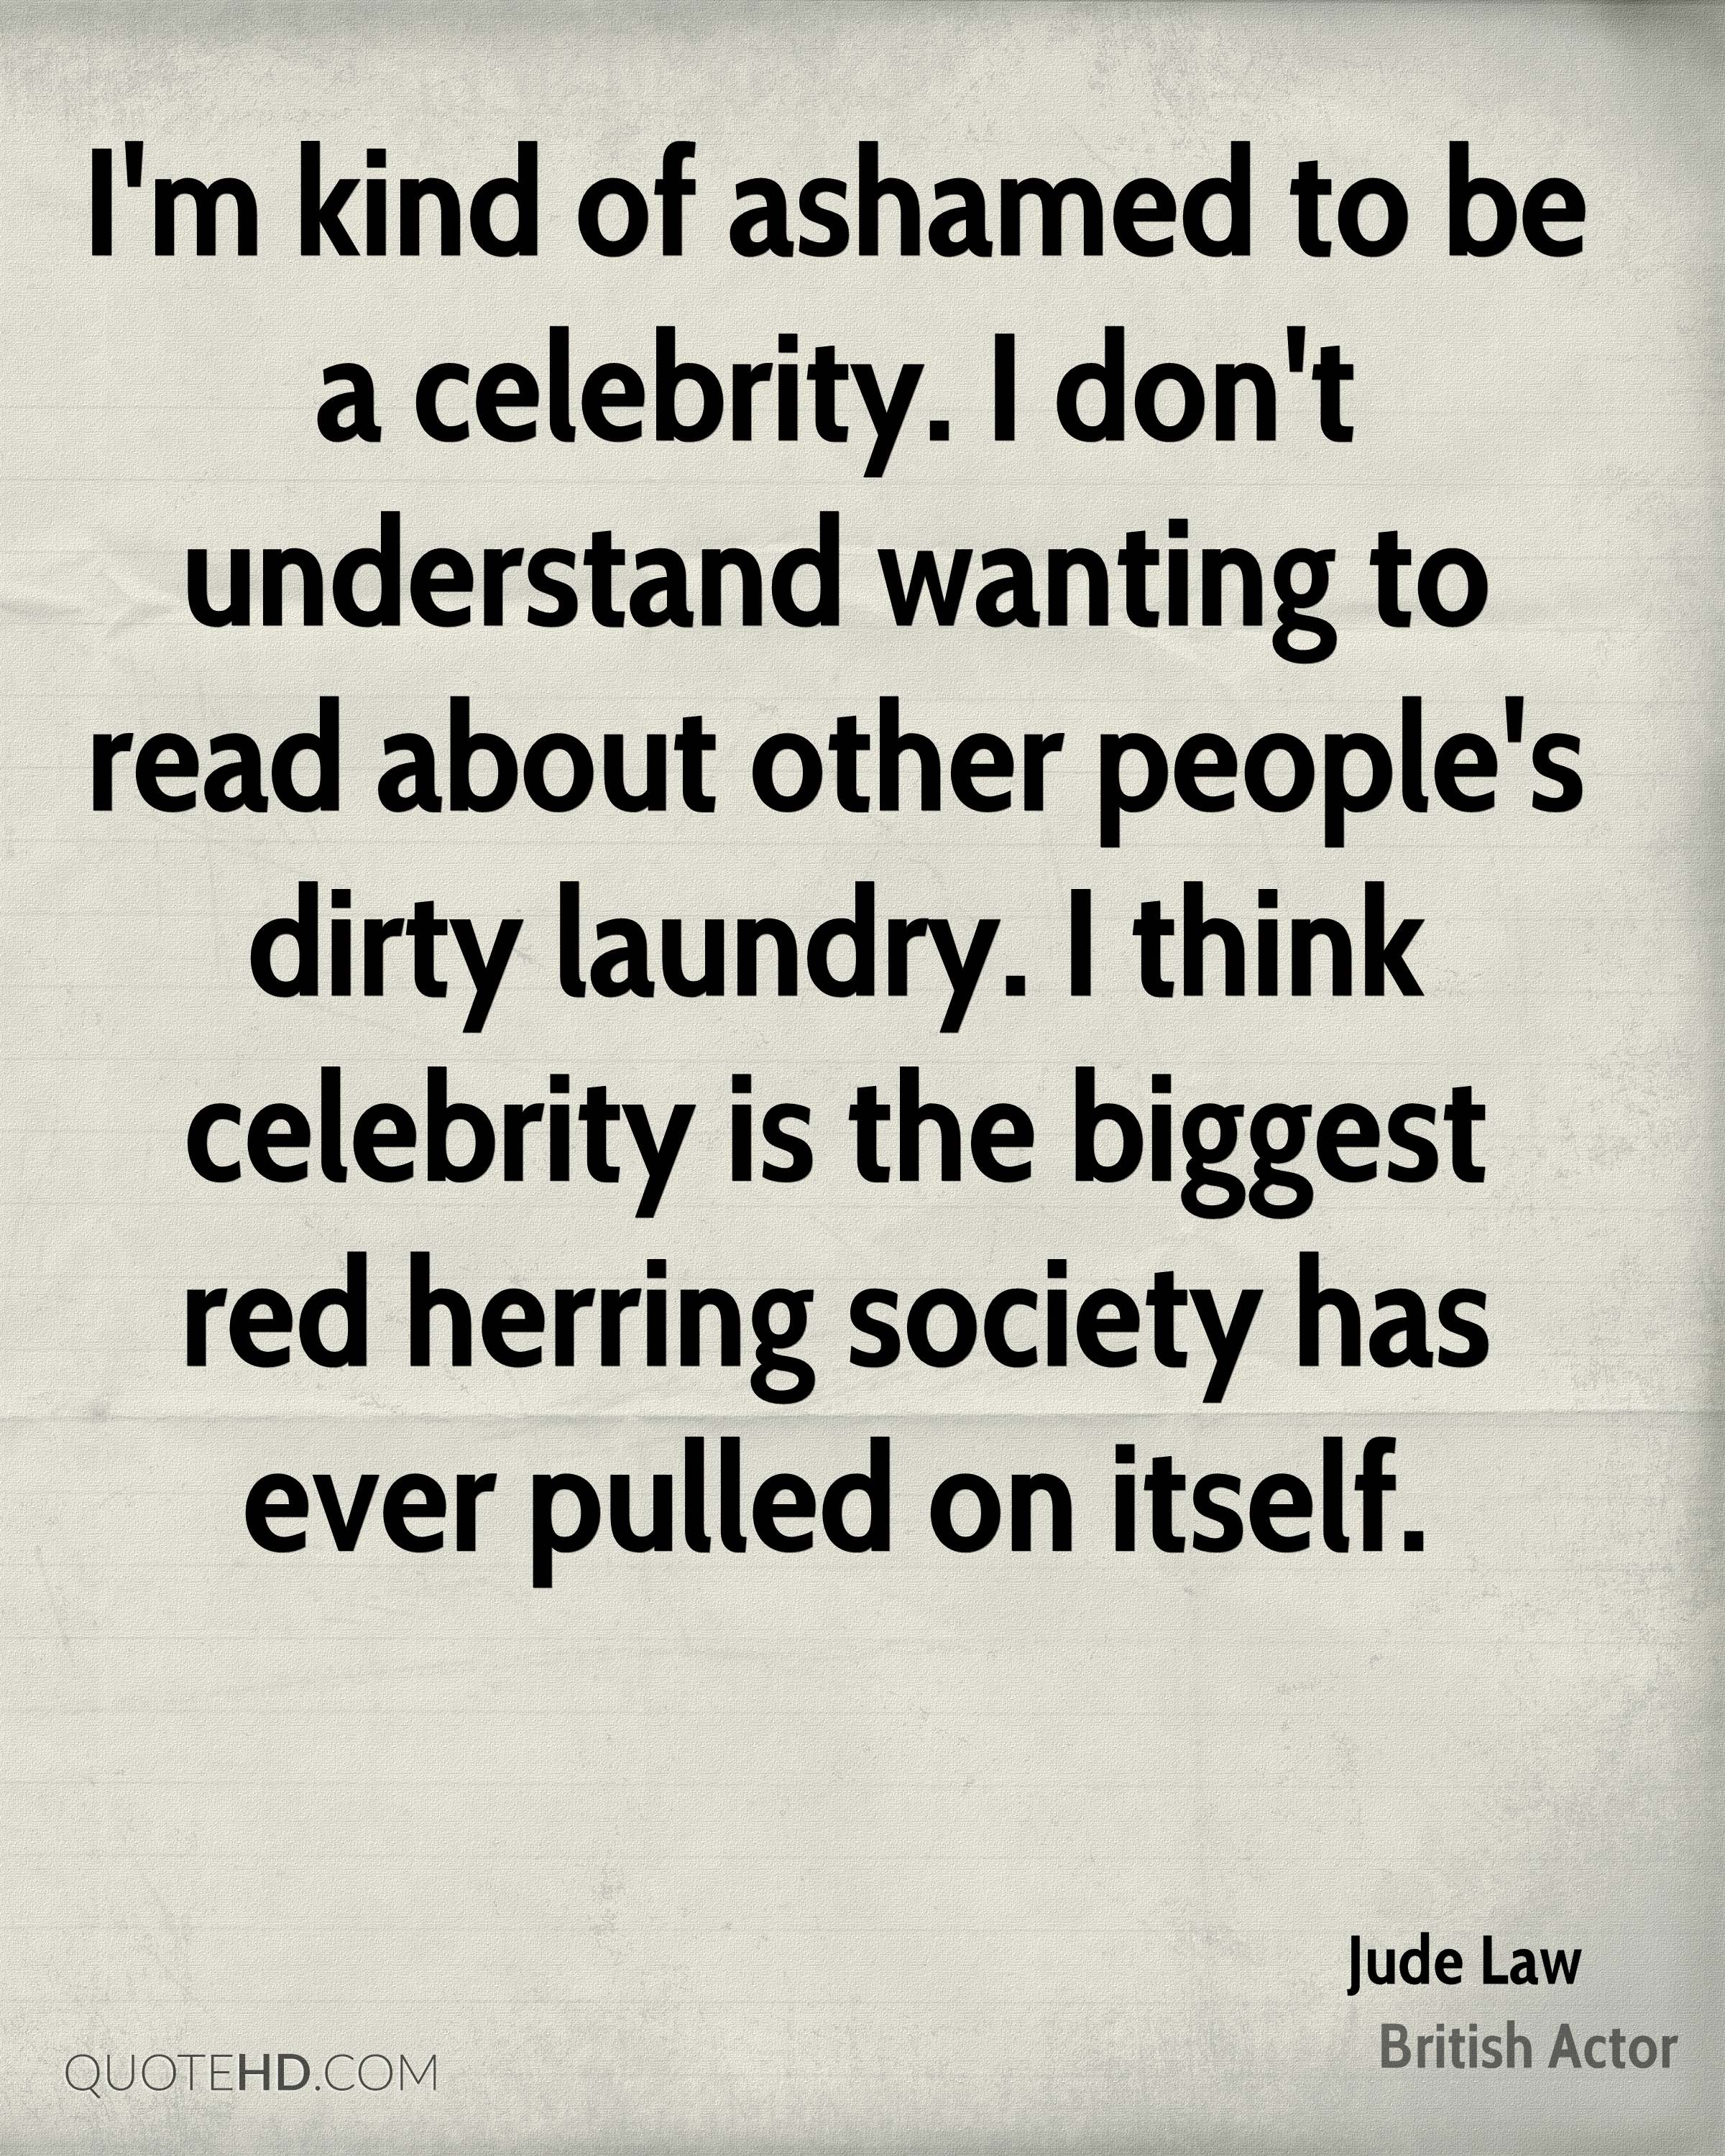 I'm kind of ashamed to be a celebrity. I don't understand wanting to read about other people's dirty laundry. I think celebrity is the biggest red herring society has ever pulled on itself.